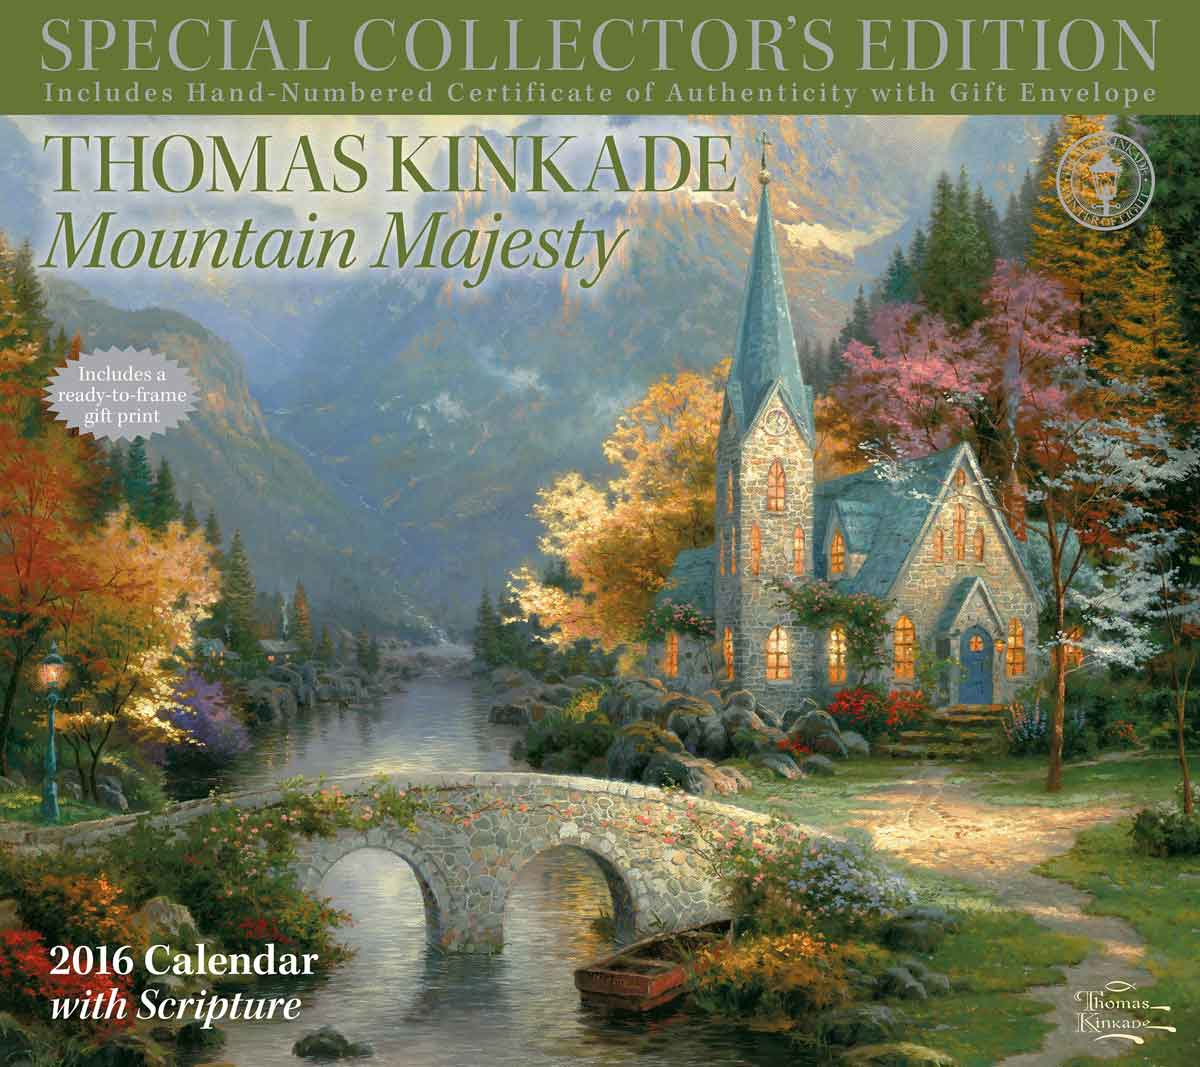 Kinkade Mountain Majesty Collector's Edition Scripture Deluxe Calendar 2016